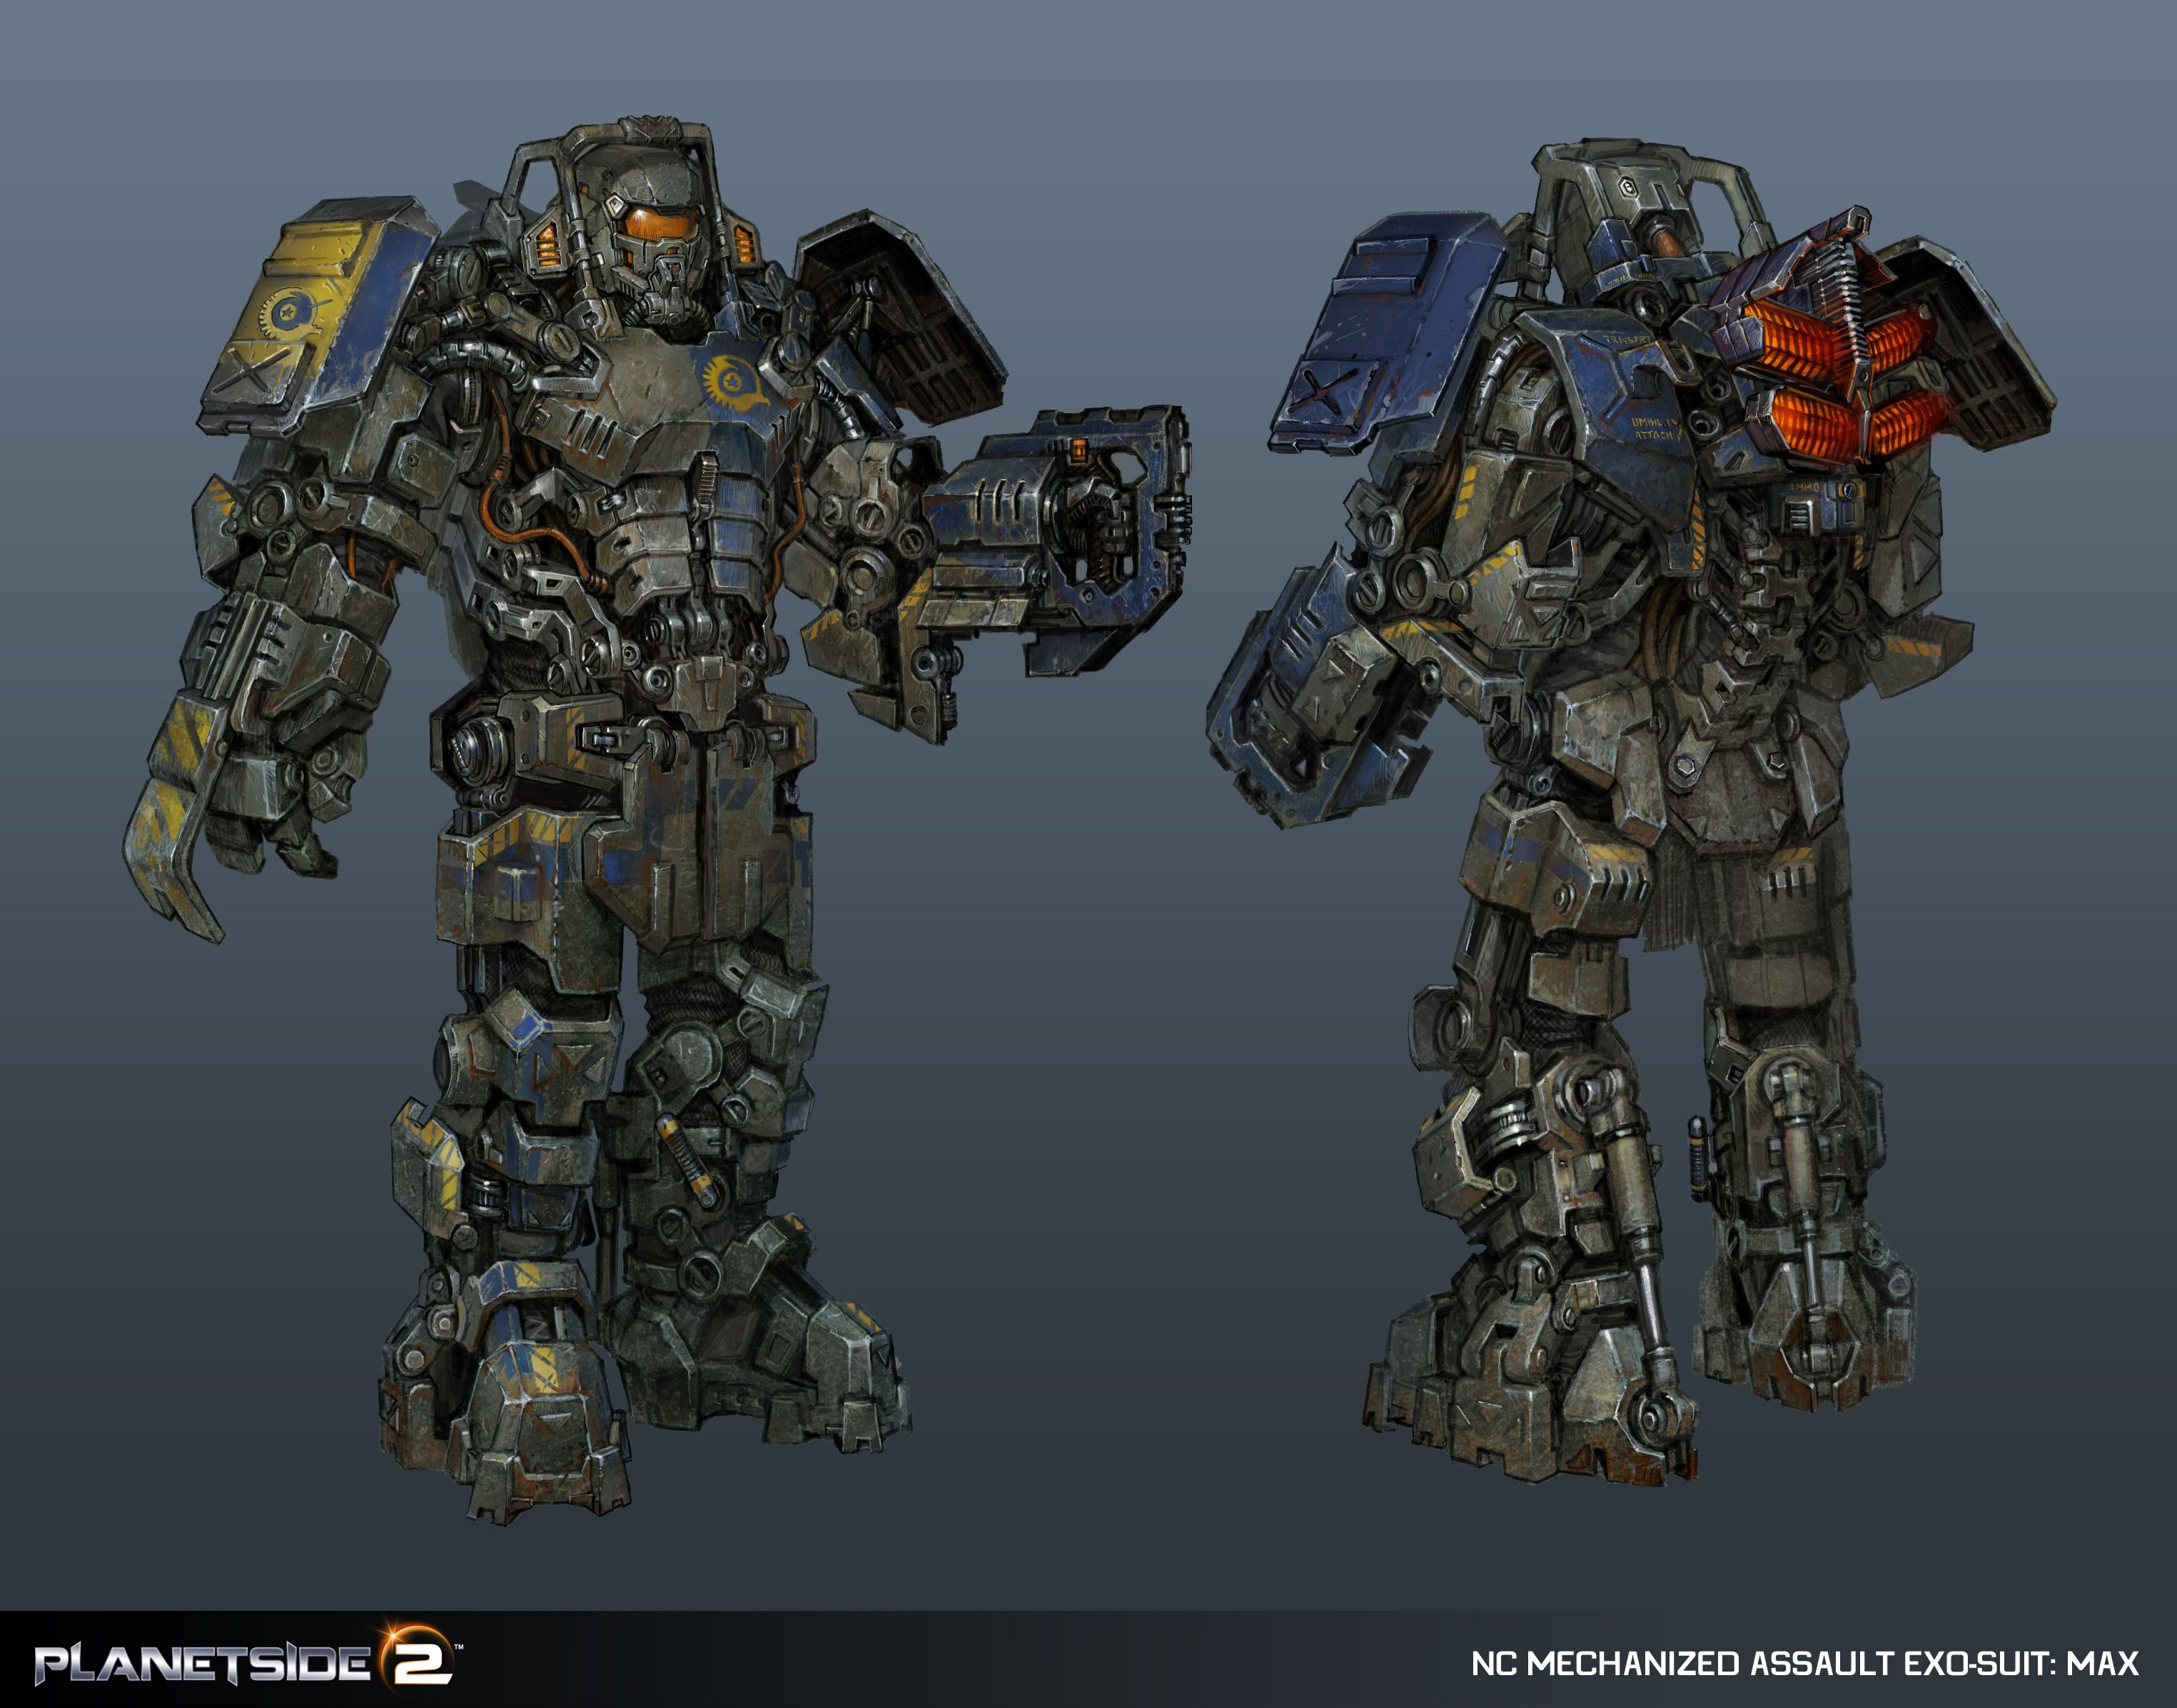 Fallen earth ragged black t shirt quest - Planetside 2 Nc Mech That Would Be Awesome If Added To The Game